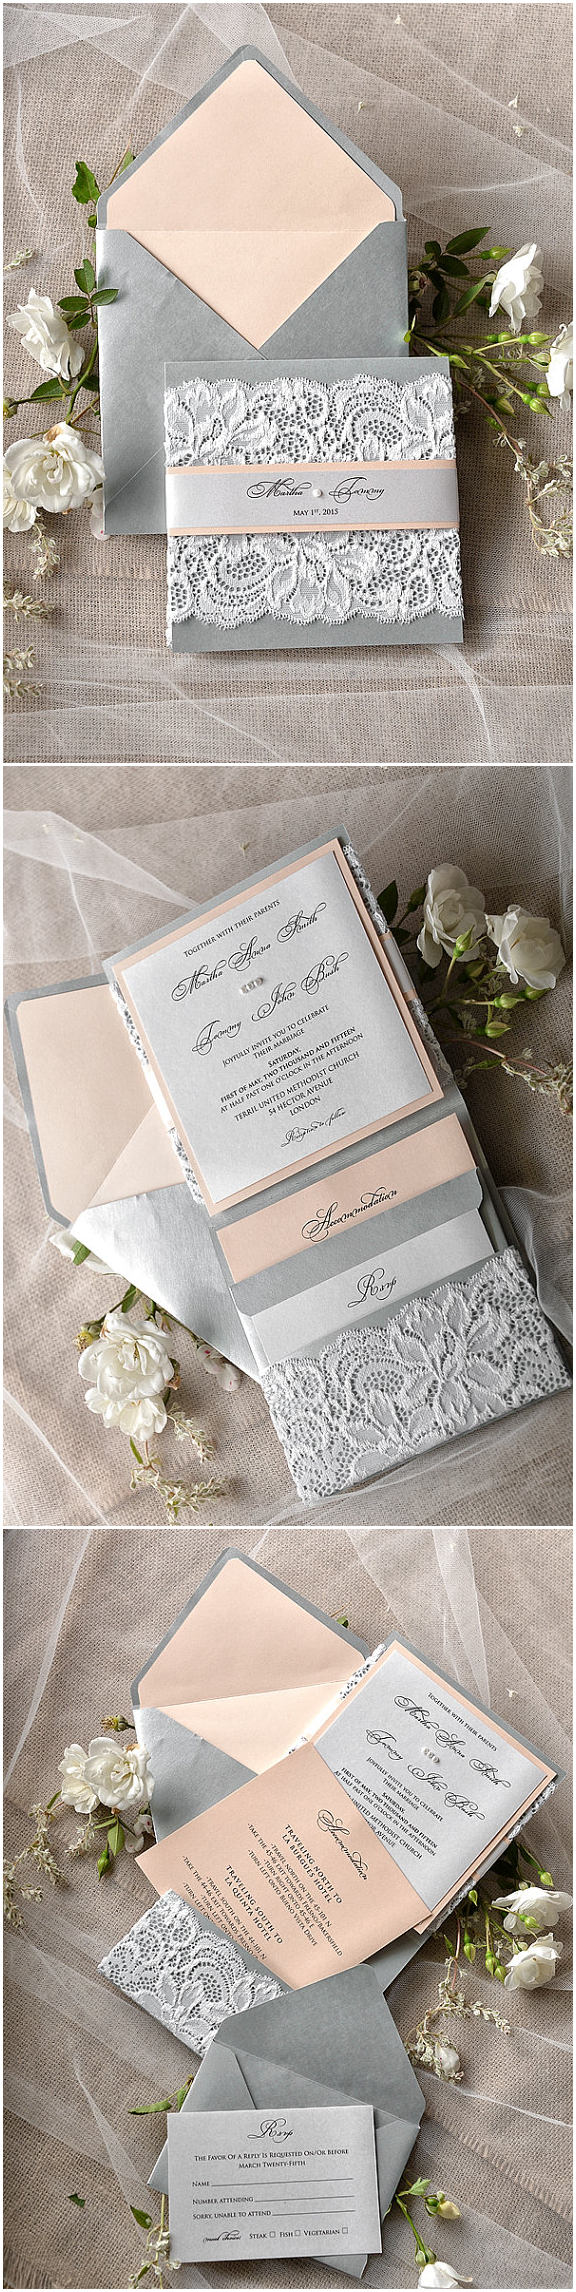 Top 10 Rustic Wedding Invitations To Wow Your Guests Elegantweddinginvites Com Blog